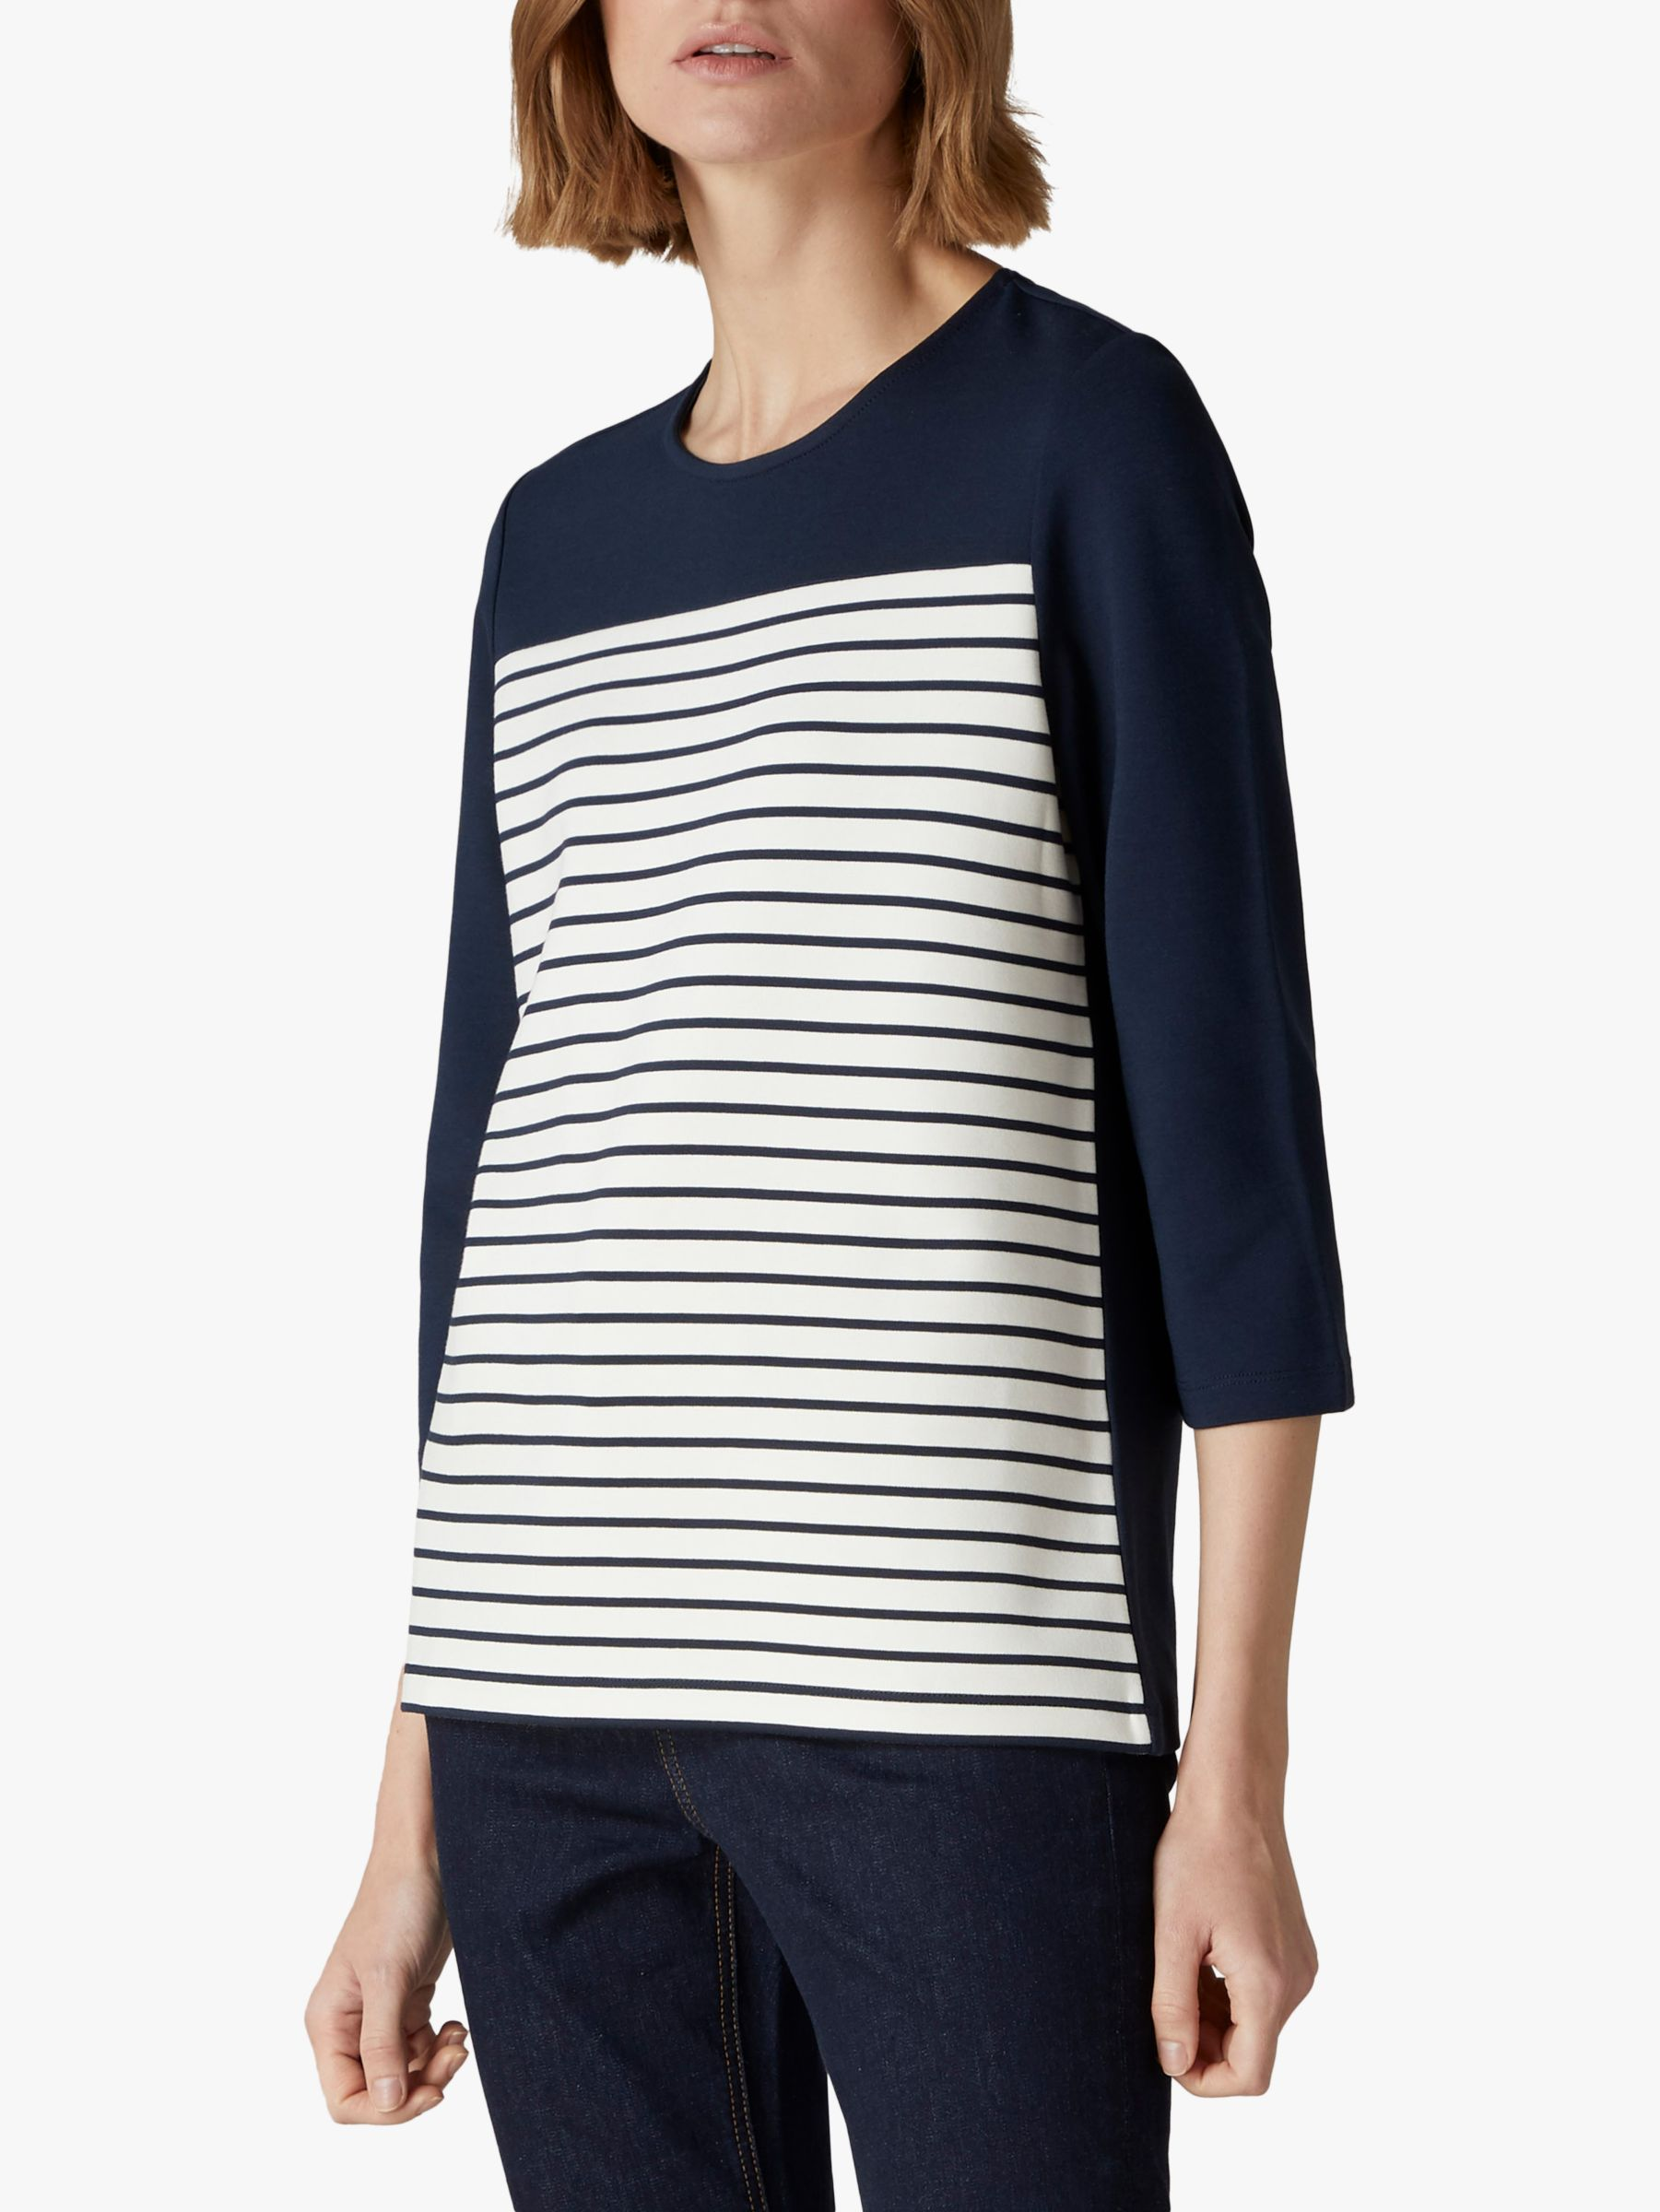 Jaeger Jaeger Cut About Piped Jersey Top, Navy